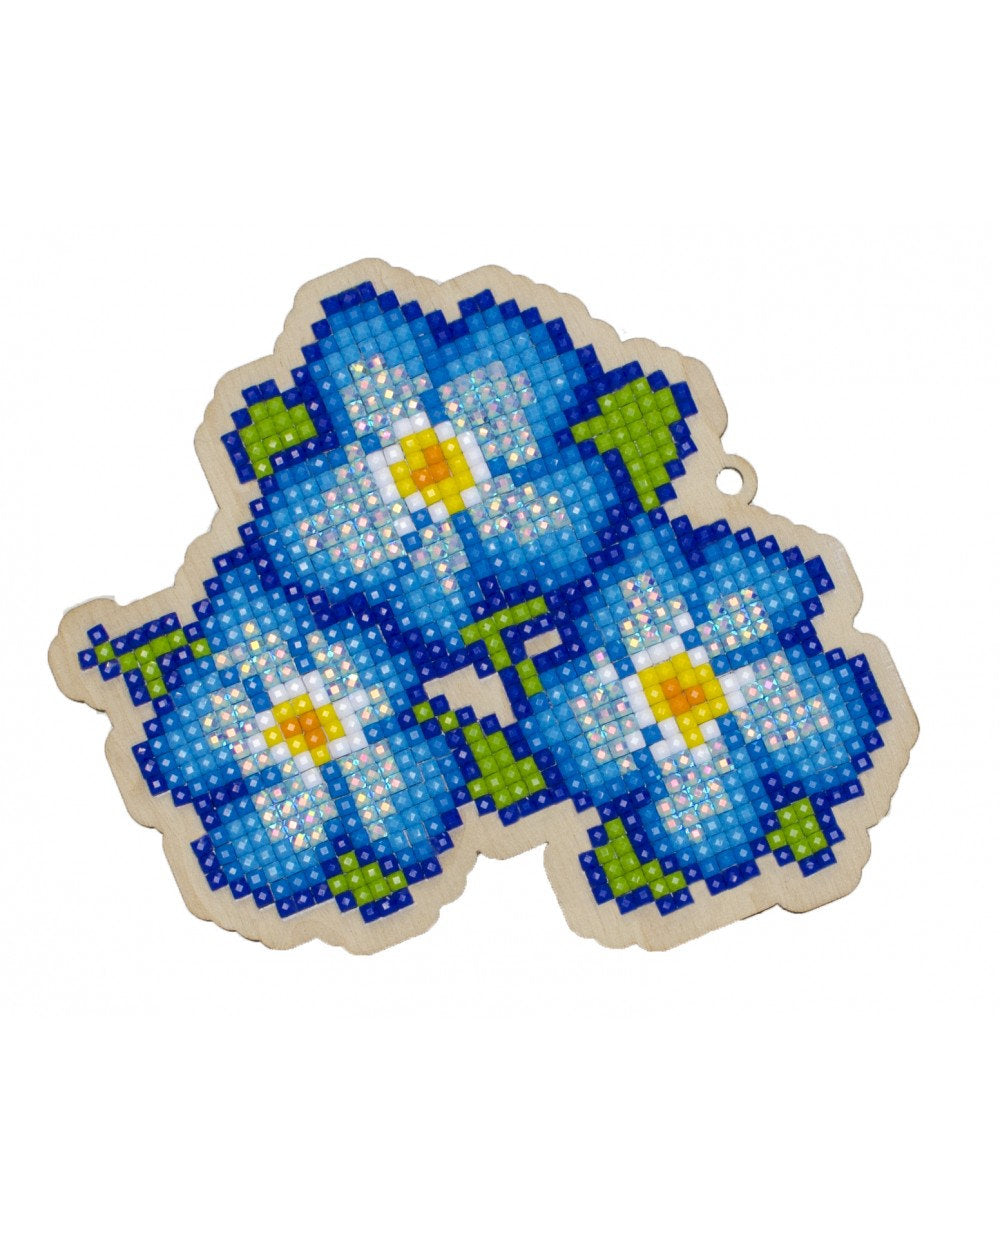 Wizardi Wooden Charms Diamond Painting Kit - Blue Pansies